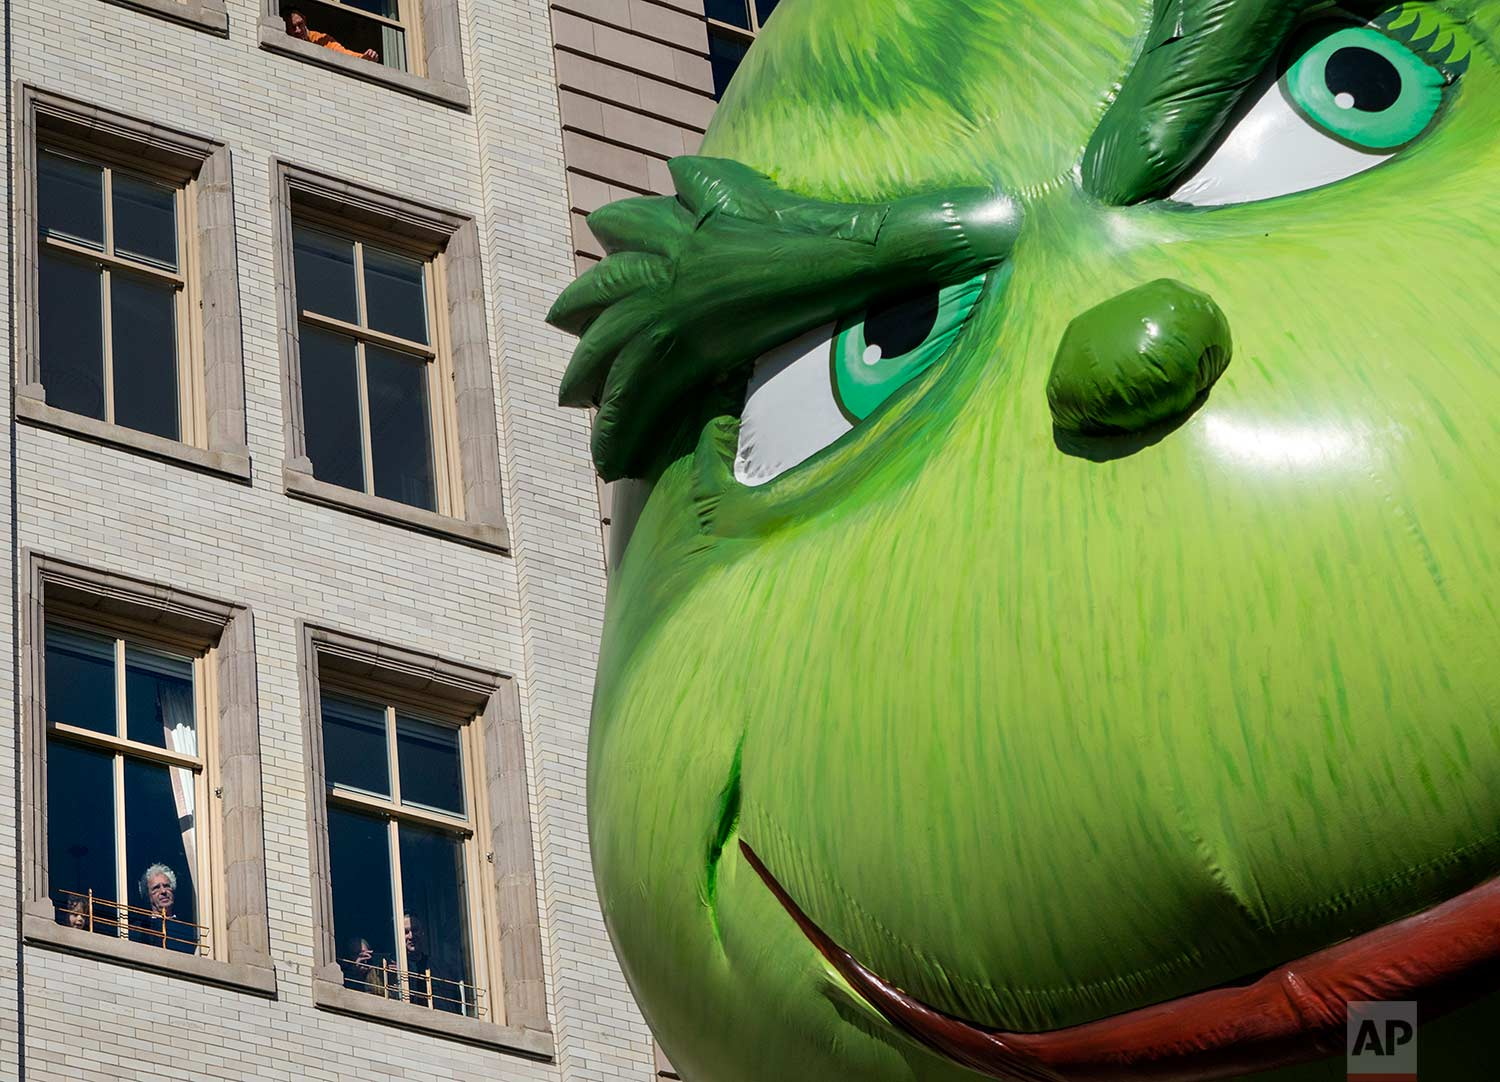 The Grinch balloon passes by windows of a building on Central Park West during Macy's Thanksgiving Day Parade in New York Thursday, Nov. 23, 2017. (AP Photo/Craig Ruttle)